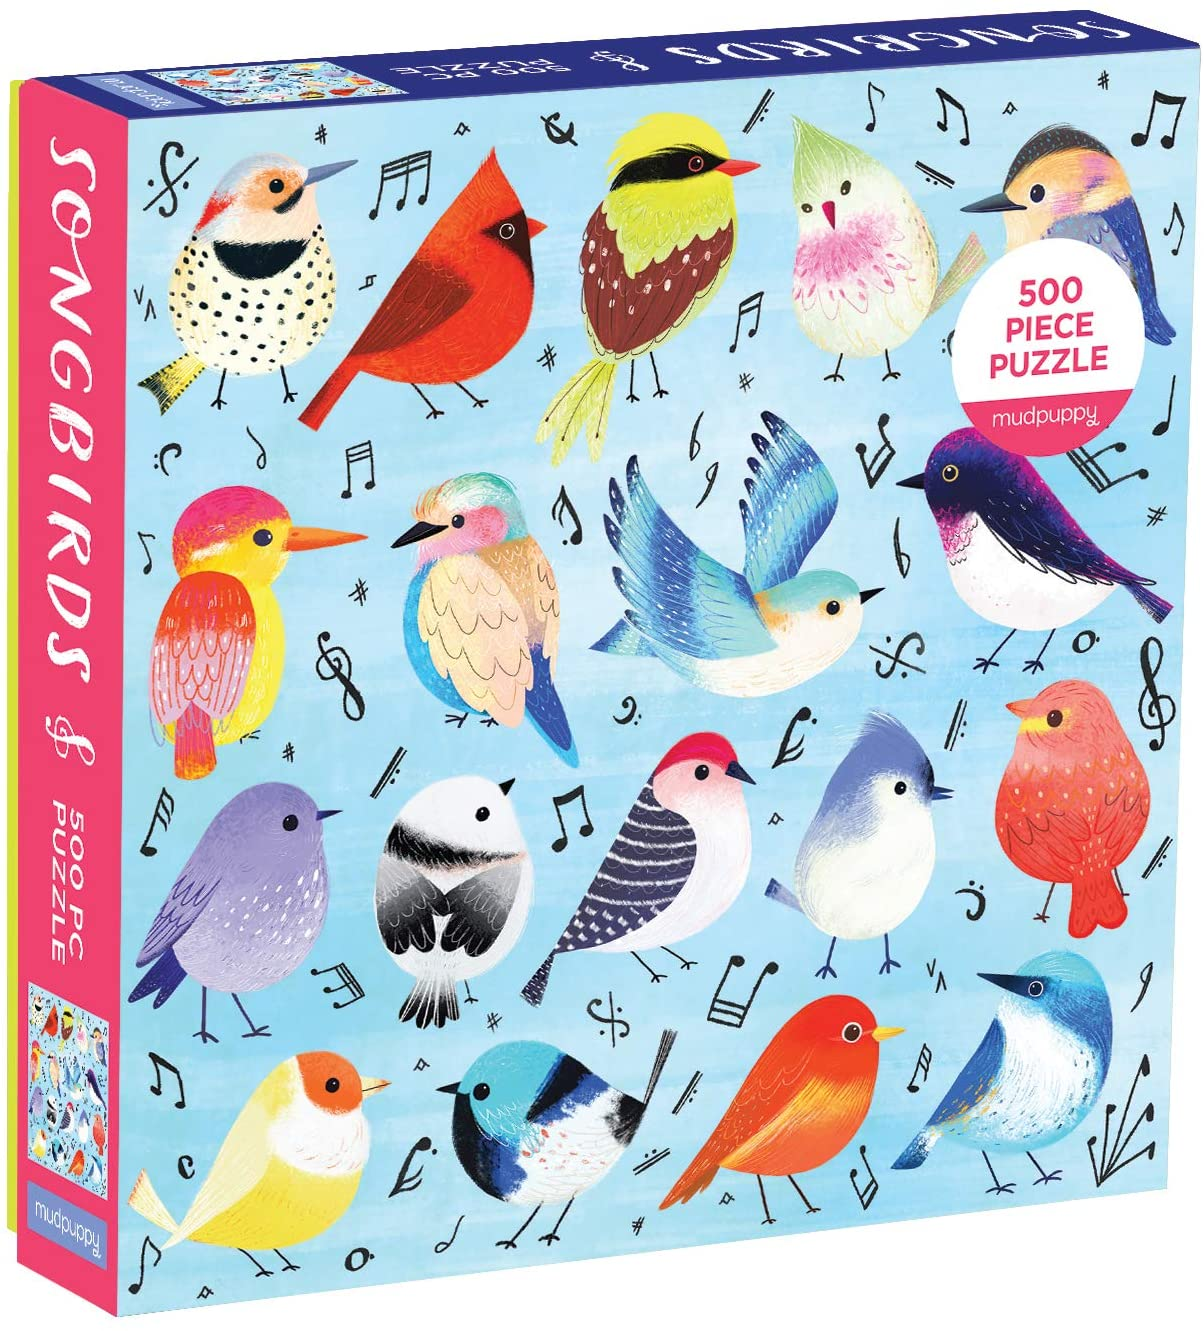 Songbirds 500 Piece Puzzle